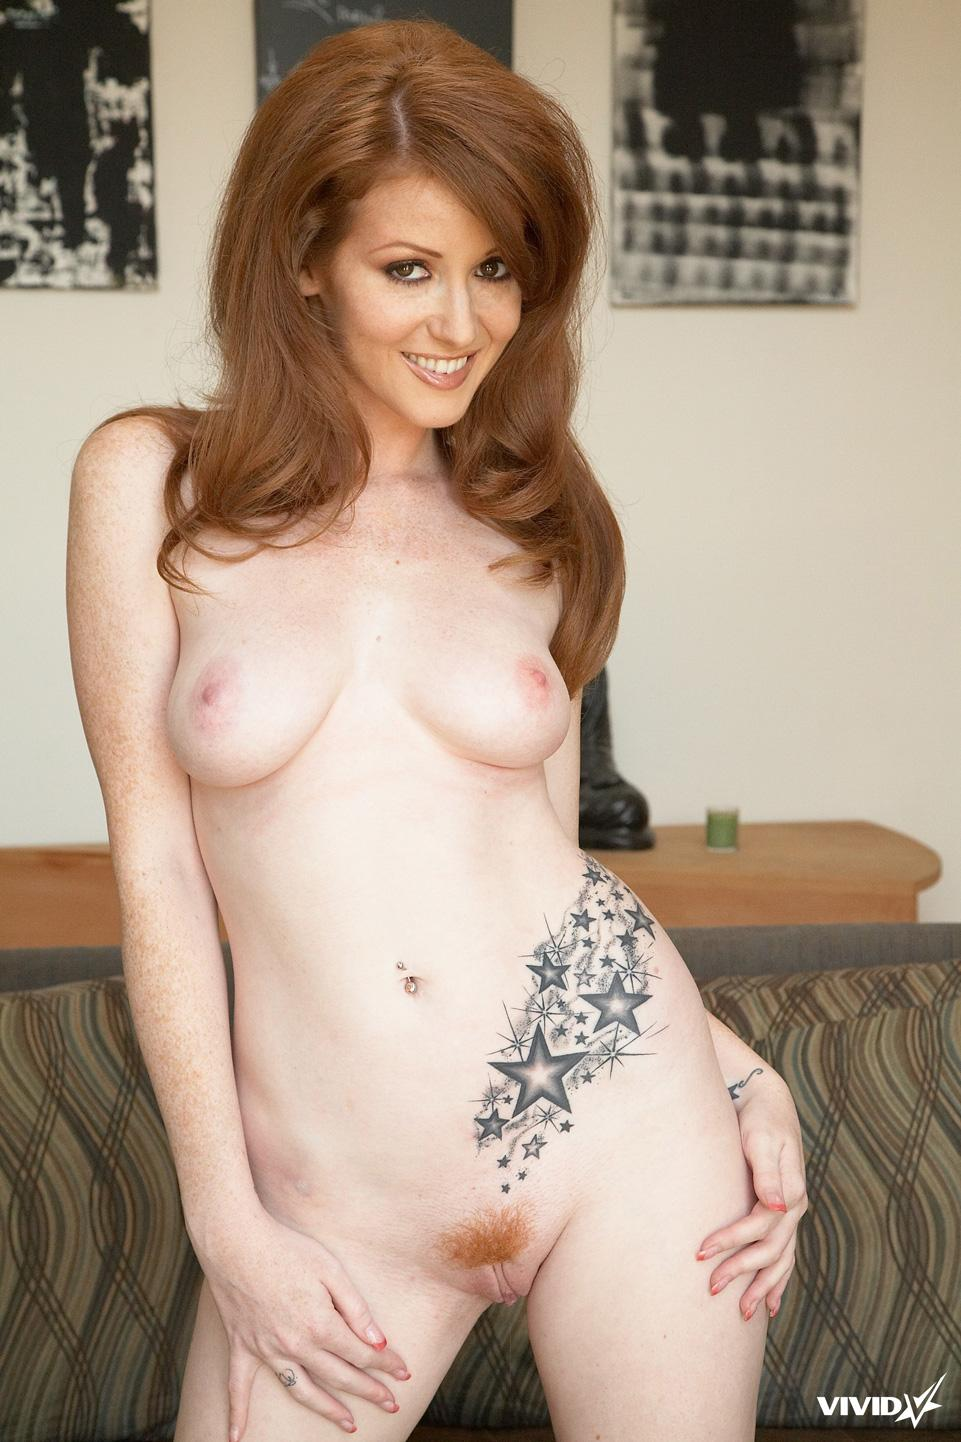 Natural redhead with tattoo - Nikki Rhodes - 6